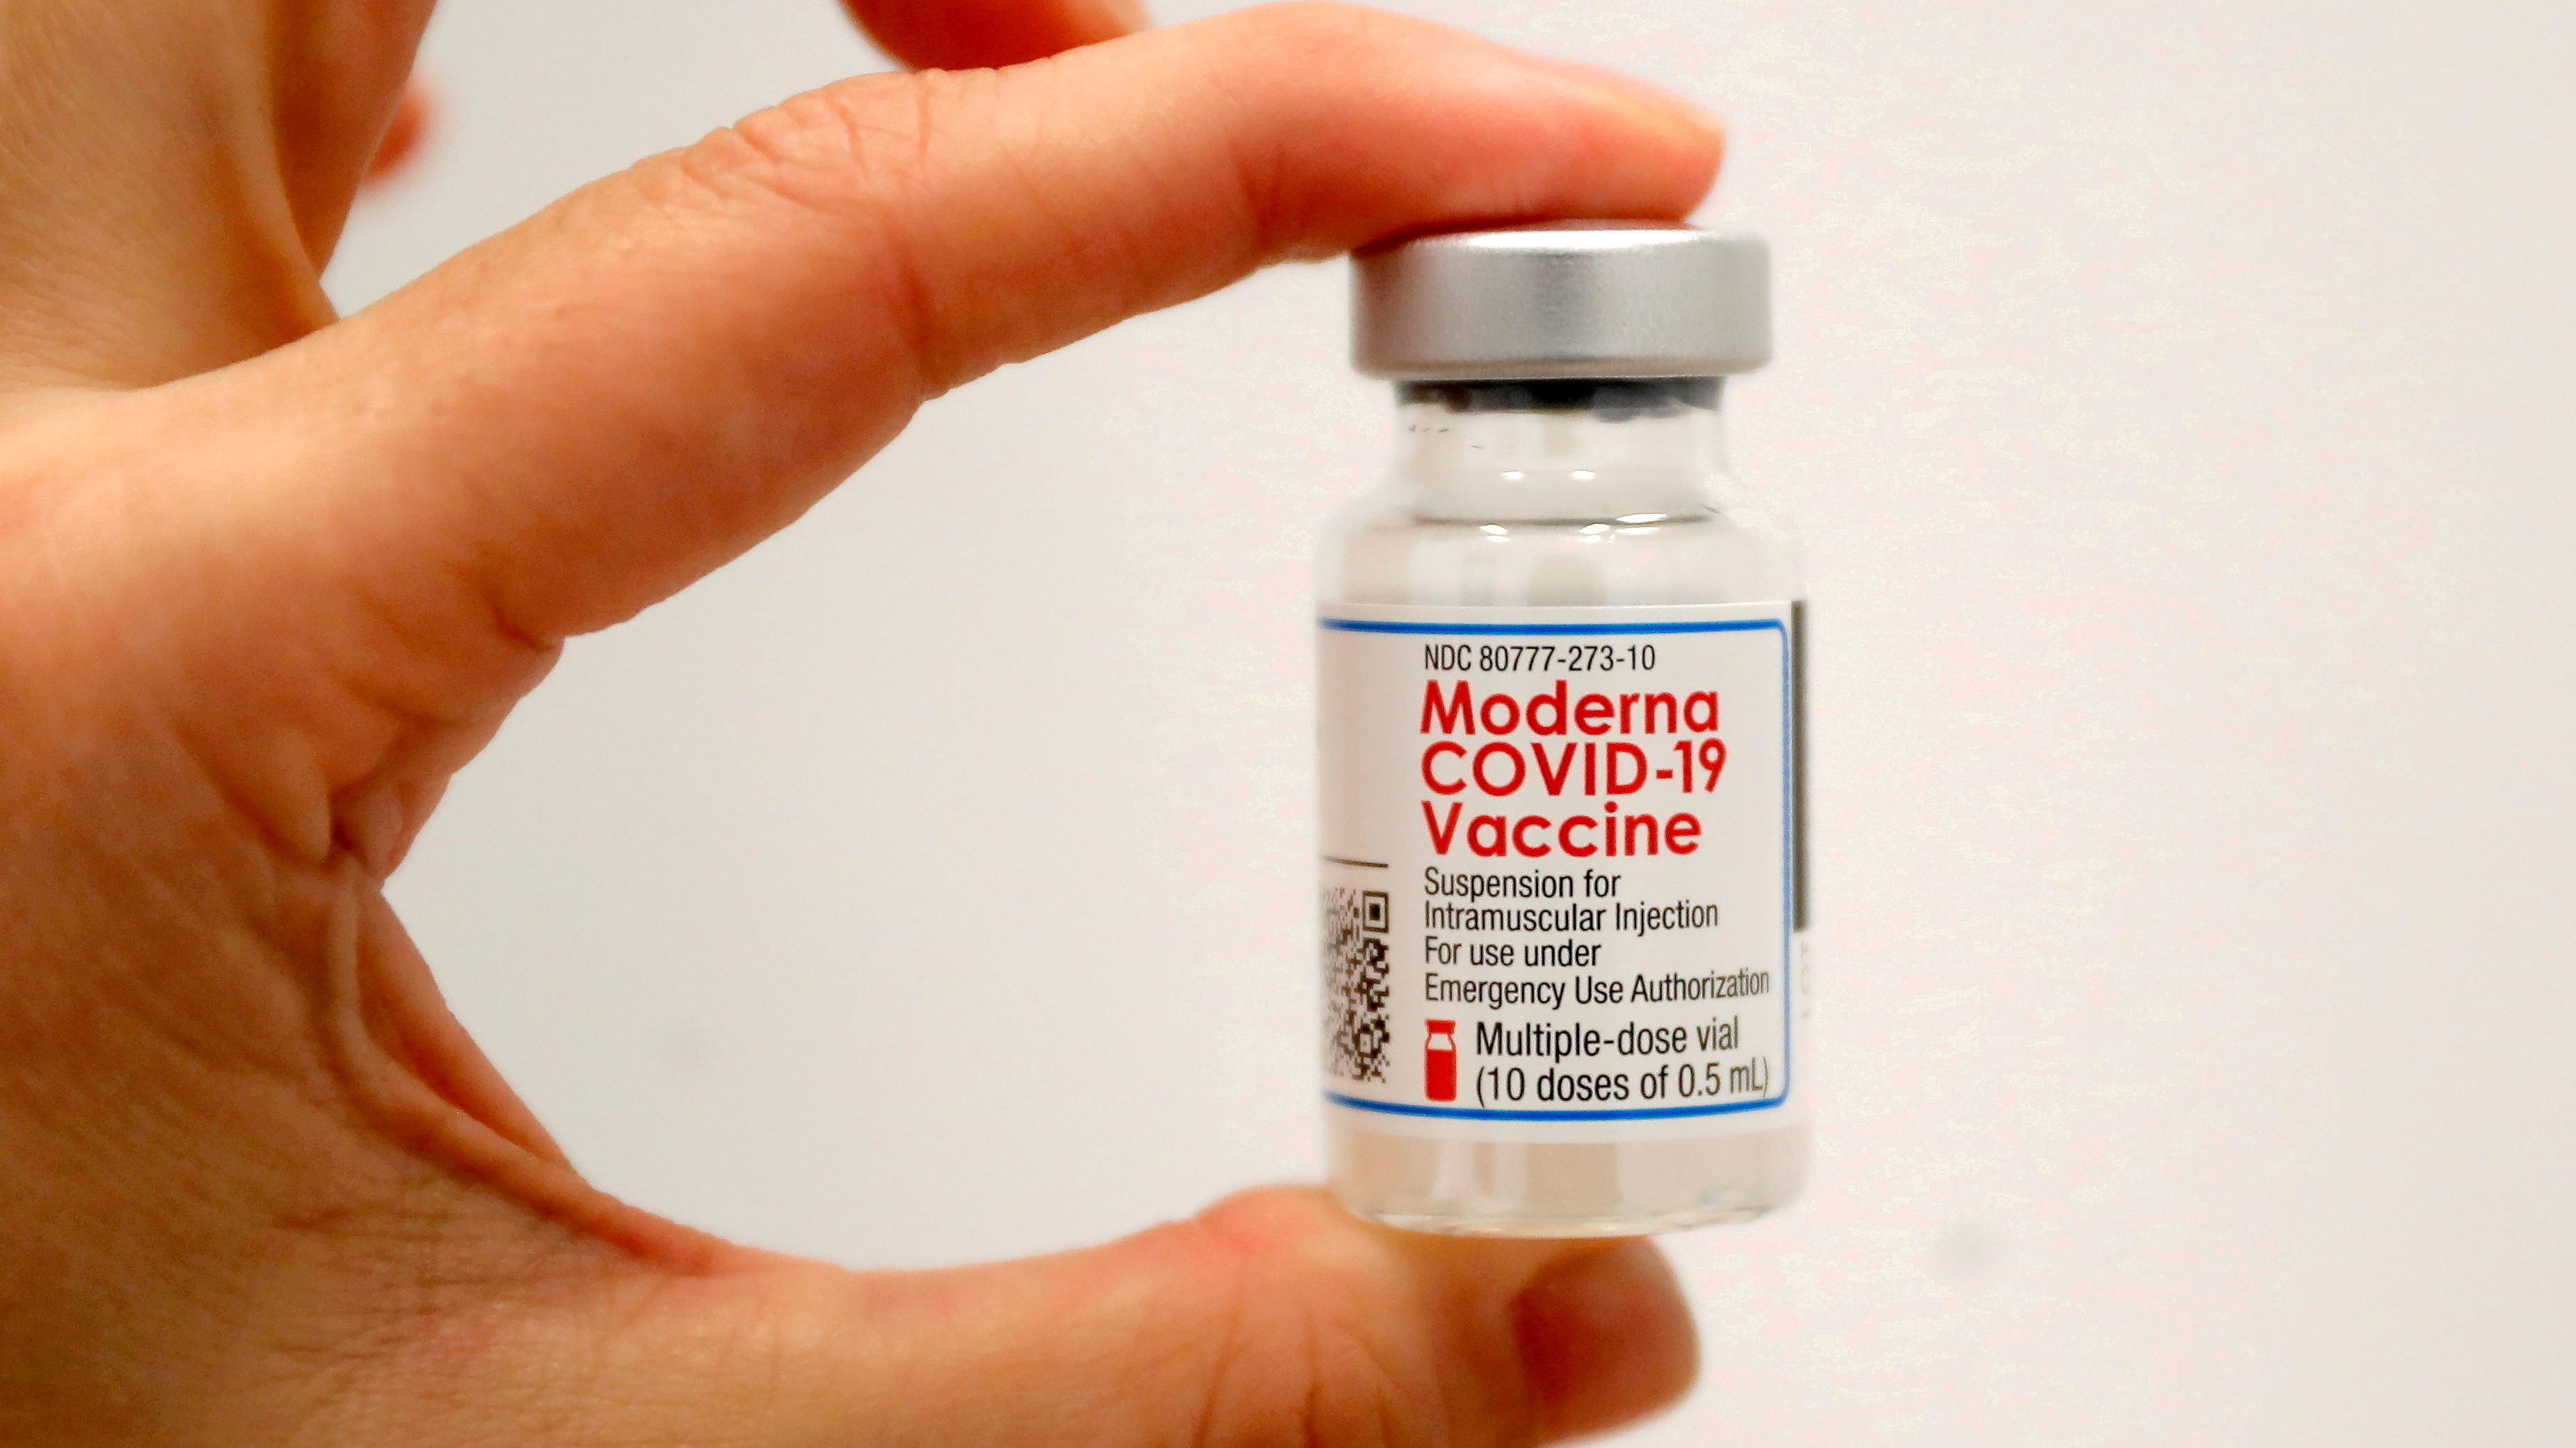 A healthcare worker holds a vial of the Moderna COVID-19 Vaccine at a vaccination site in New York